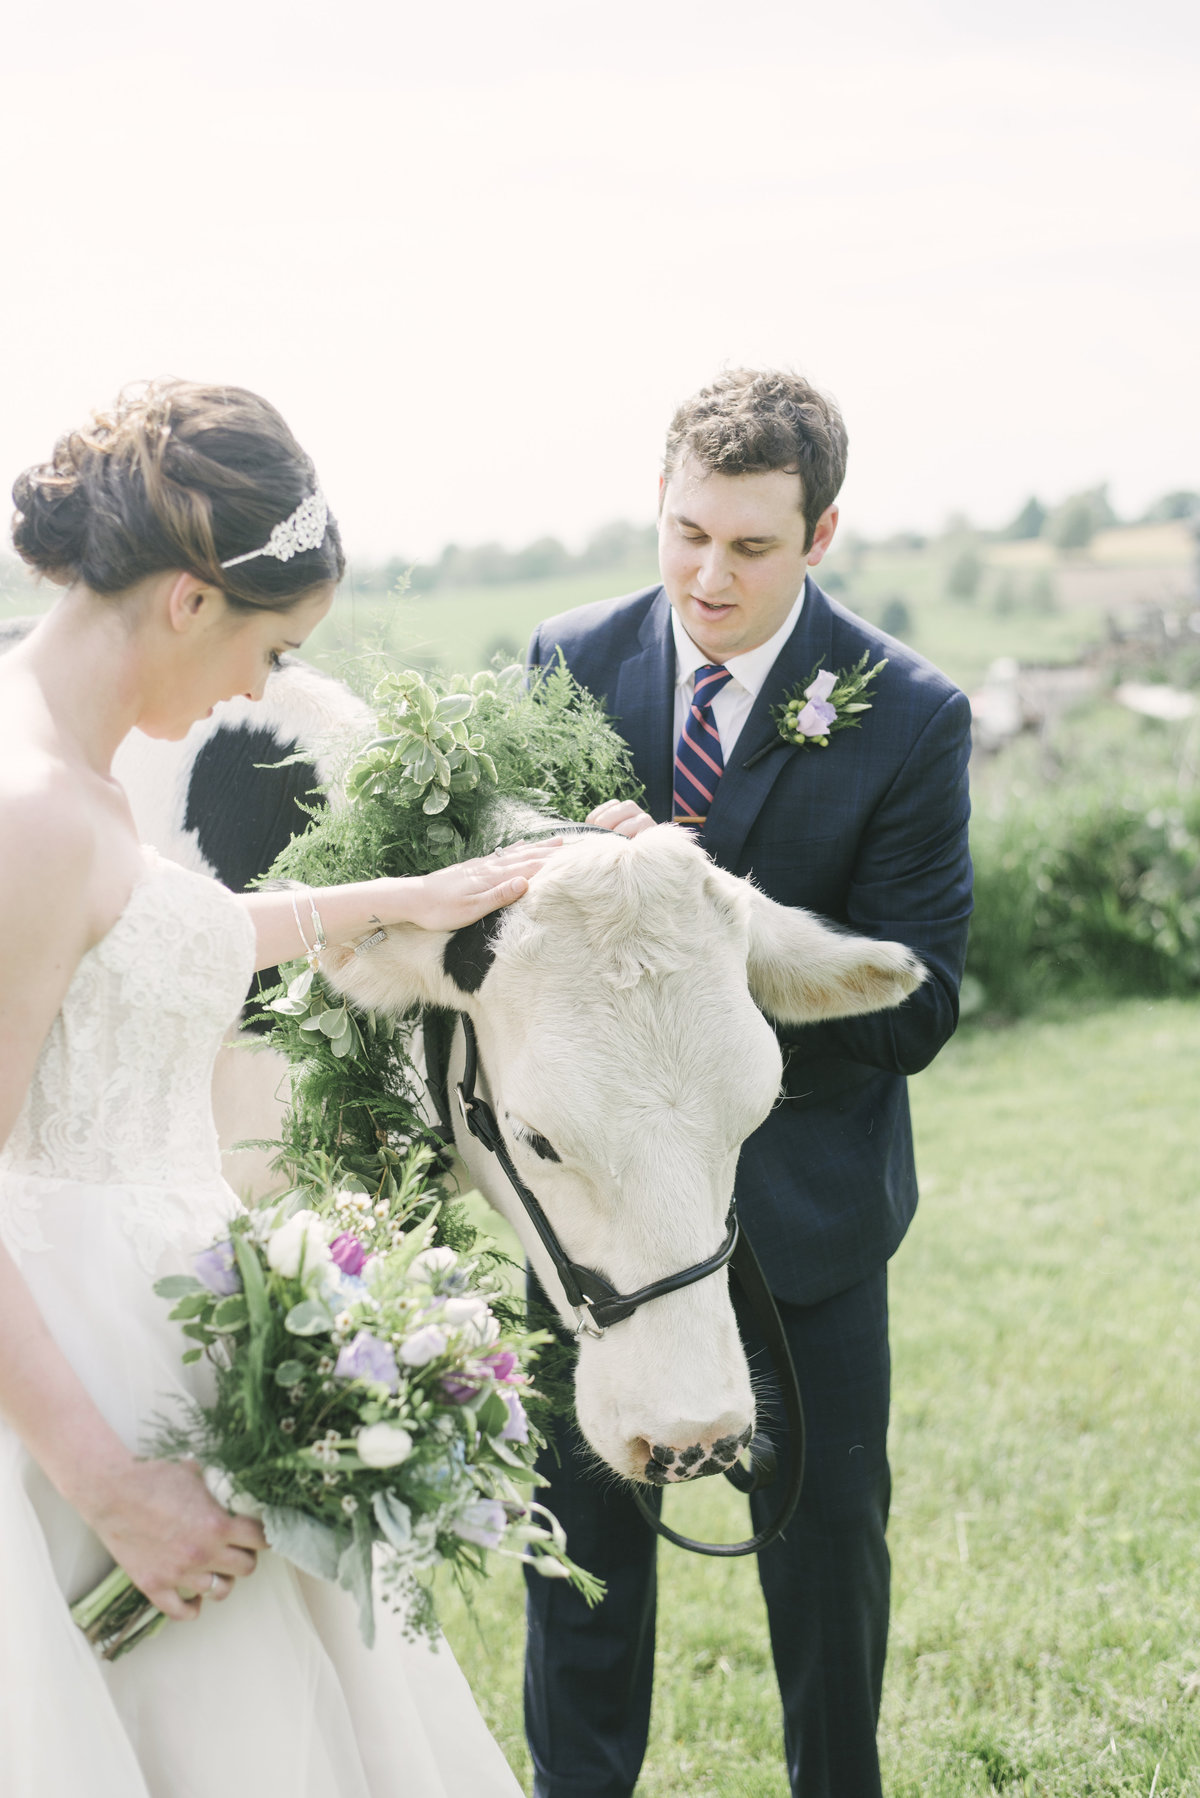 Monica-Relyea-Events-Alicia-King-Photography-Globe-Hill-Ronnybrook-Farm-Hudson-Valley-wedding-shoot-inspiration14